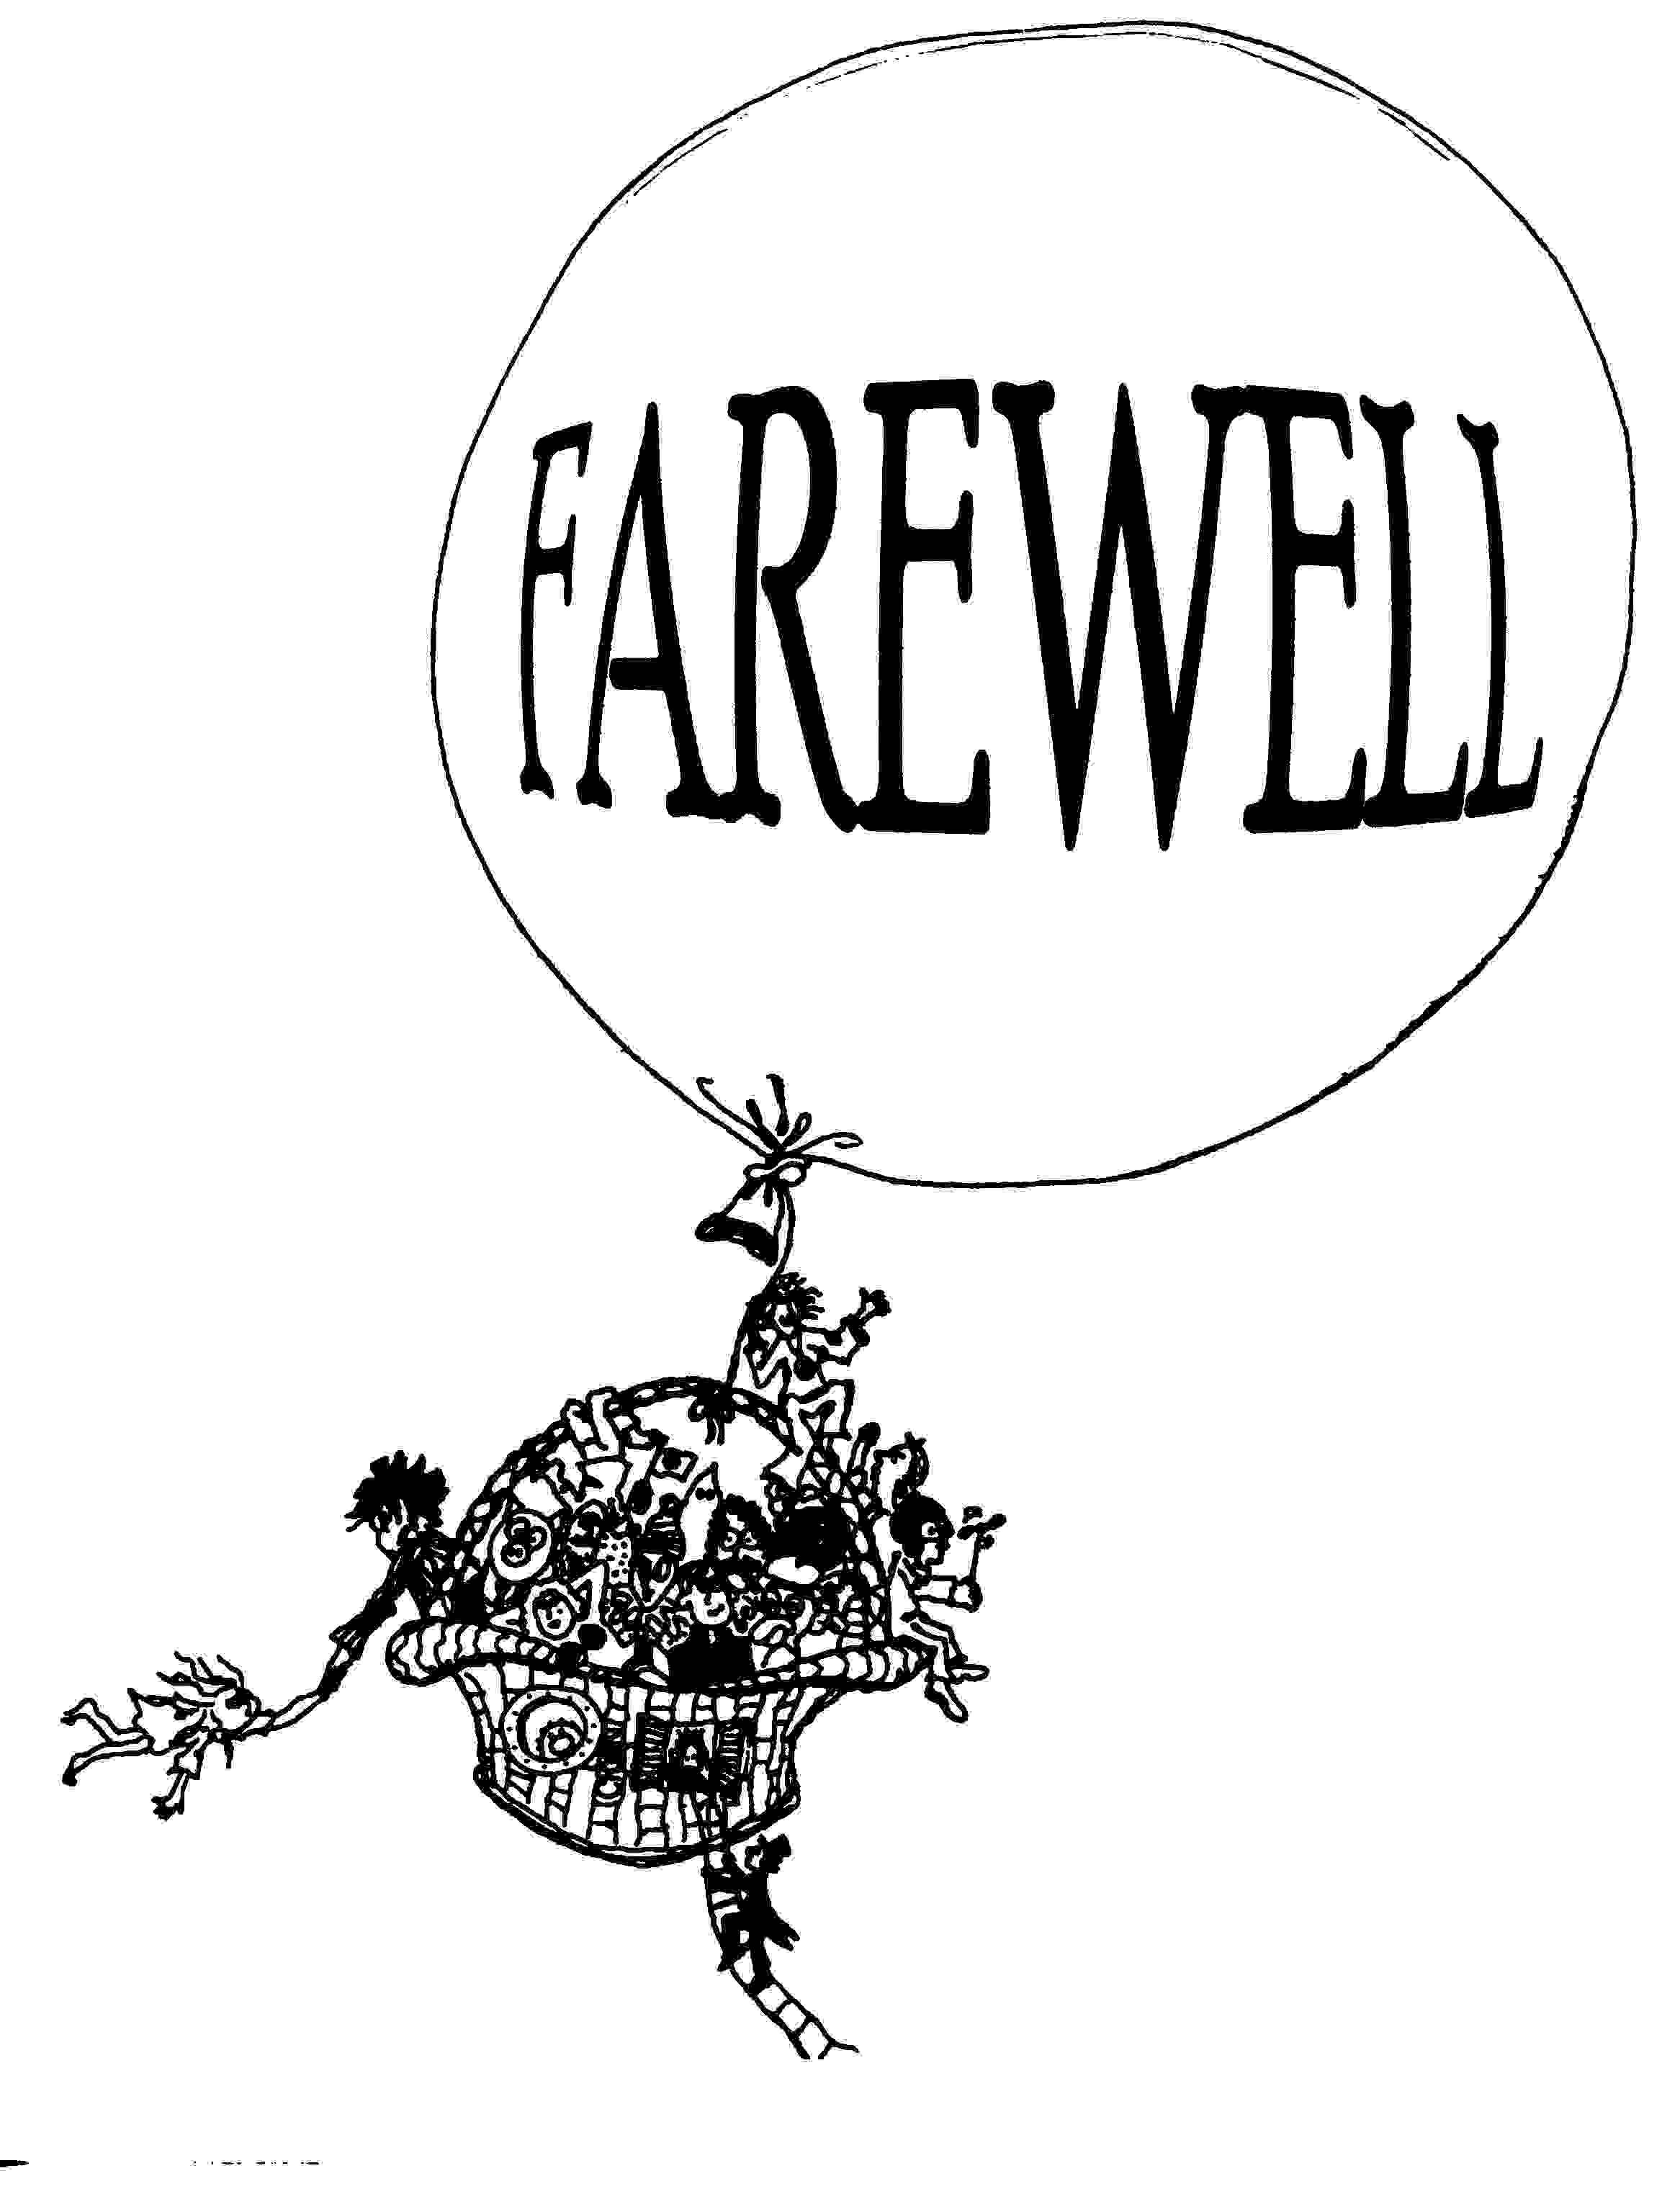 Farewell party clipart.